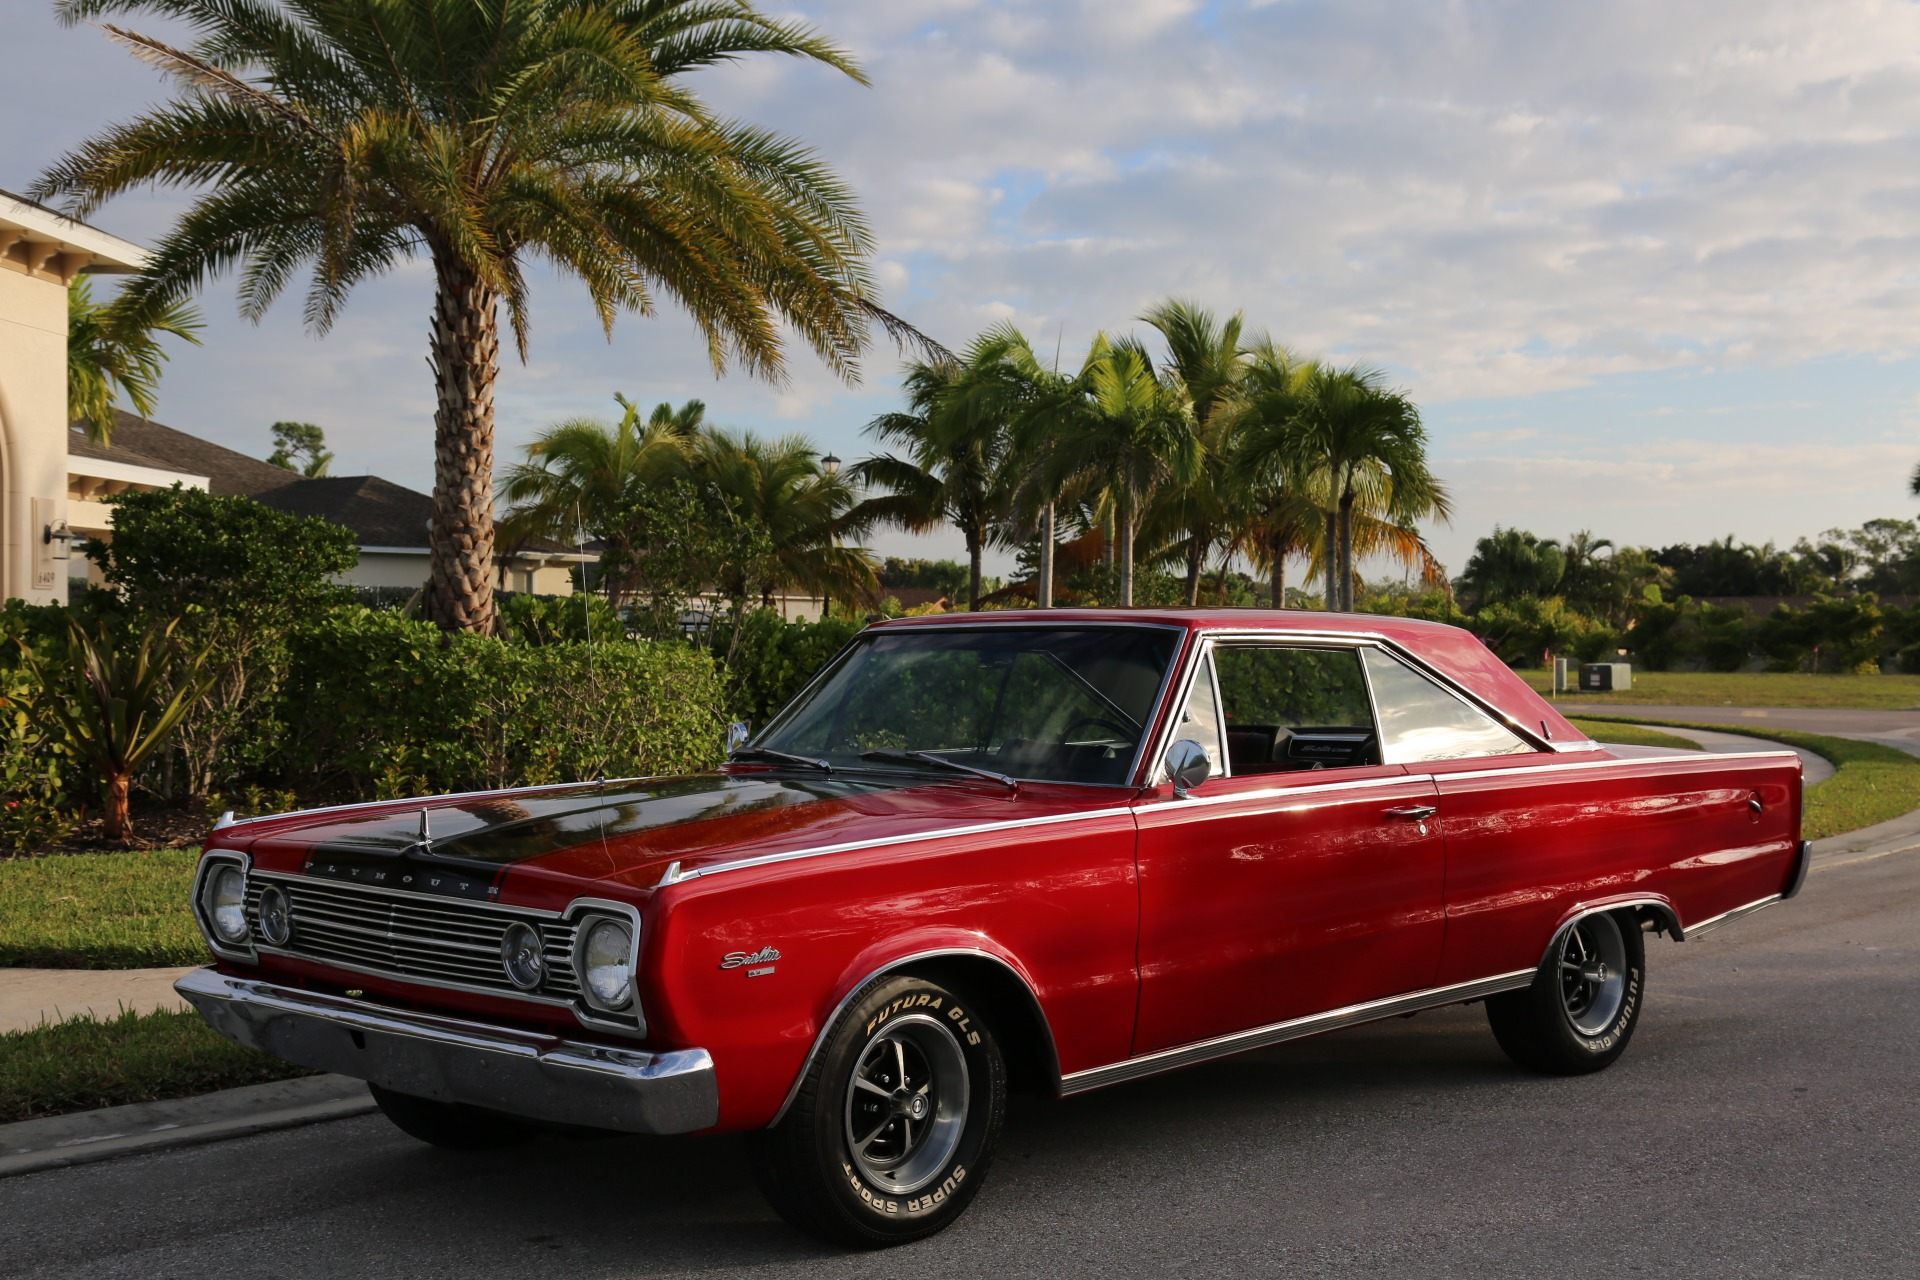 Used 1966 Plymouth Satellite 440 V8 Automatic for sale Sold at Muscle Cars for Sale Inc. in Fort Myers FL 33912 3